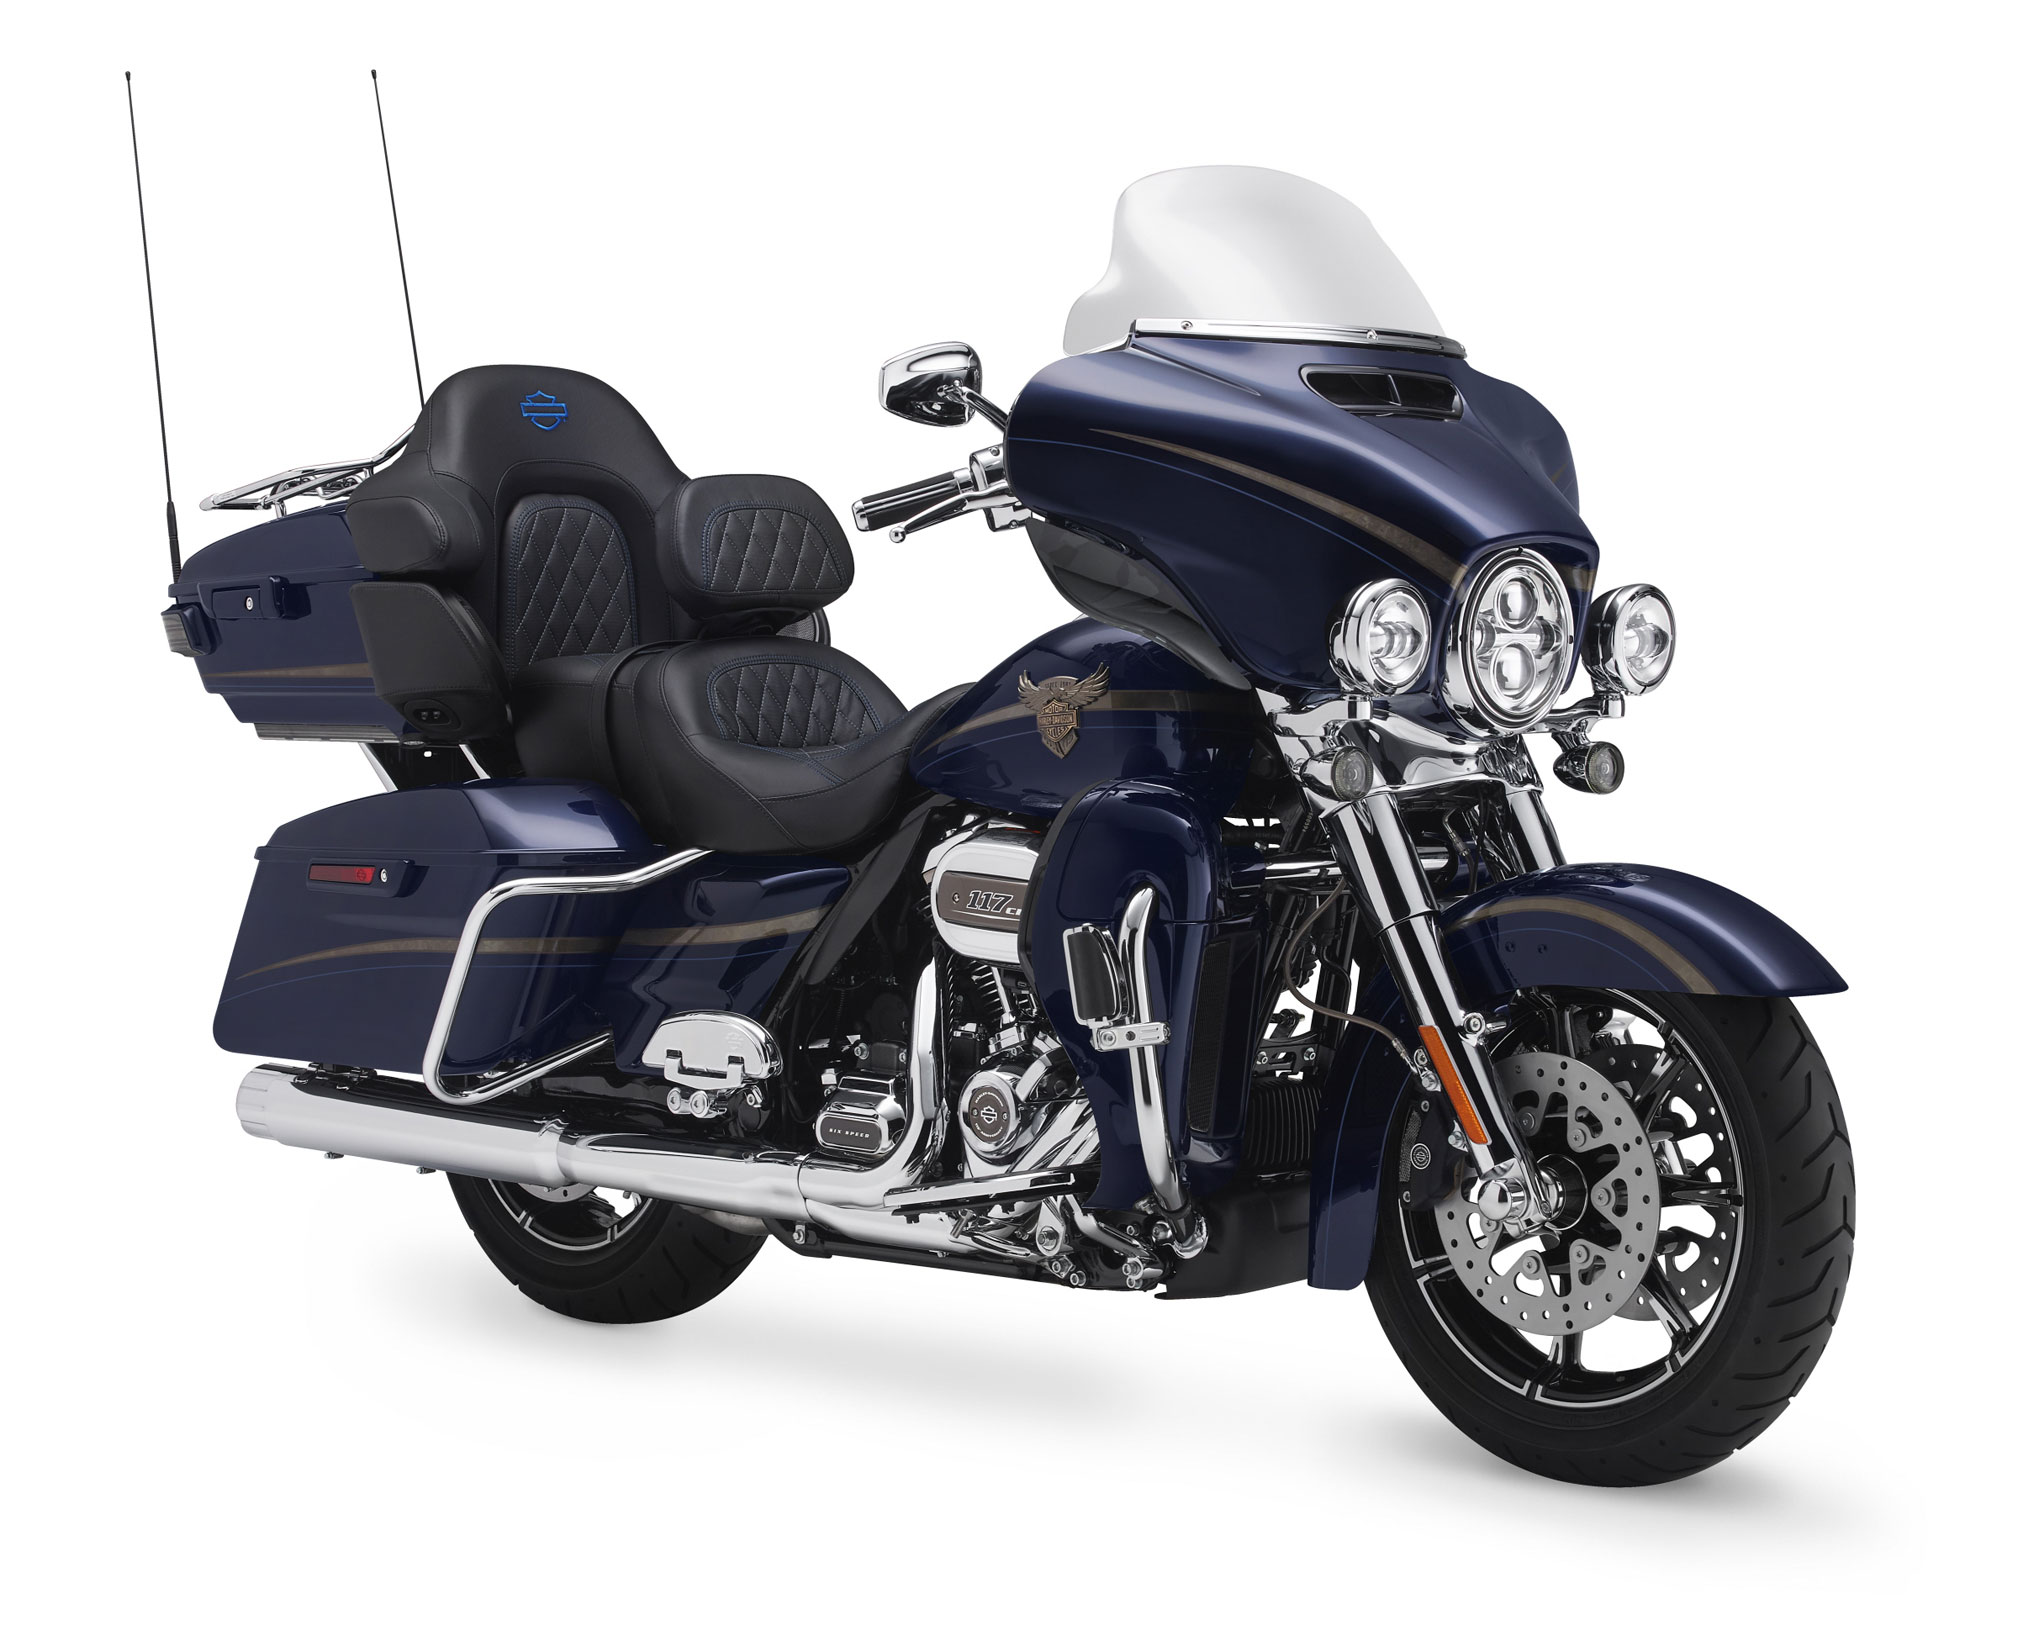 2018 harley davidson cvo limited 115th anniversary review totalmotorcycle. Black Bedroom Furniture Sets. Home Design Ideas